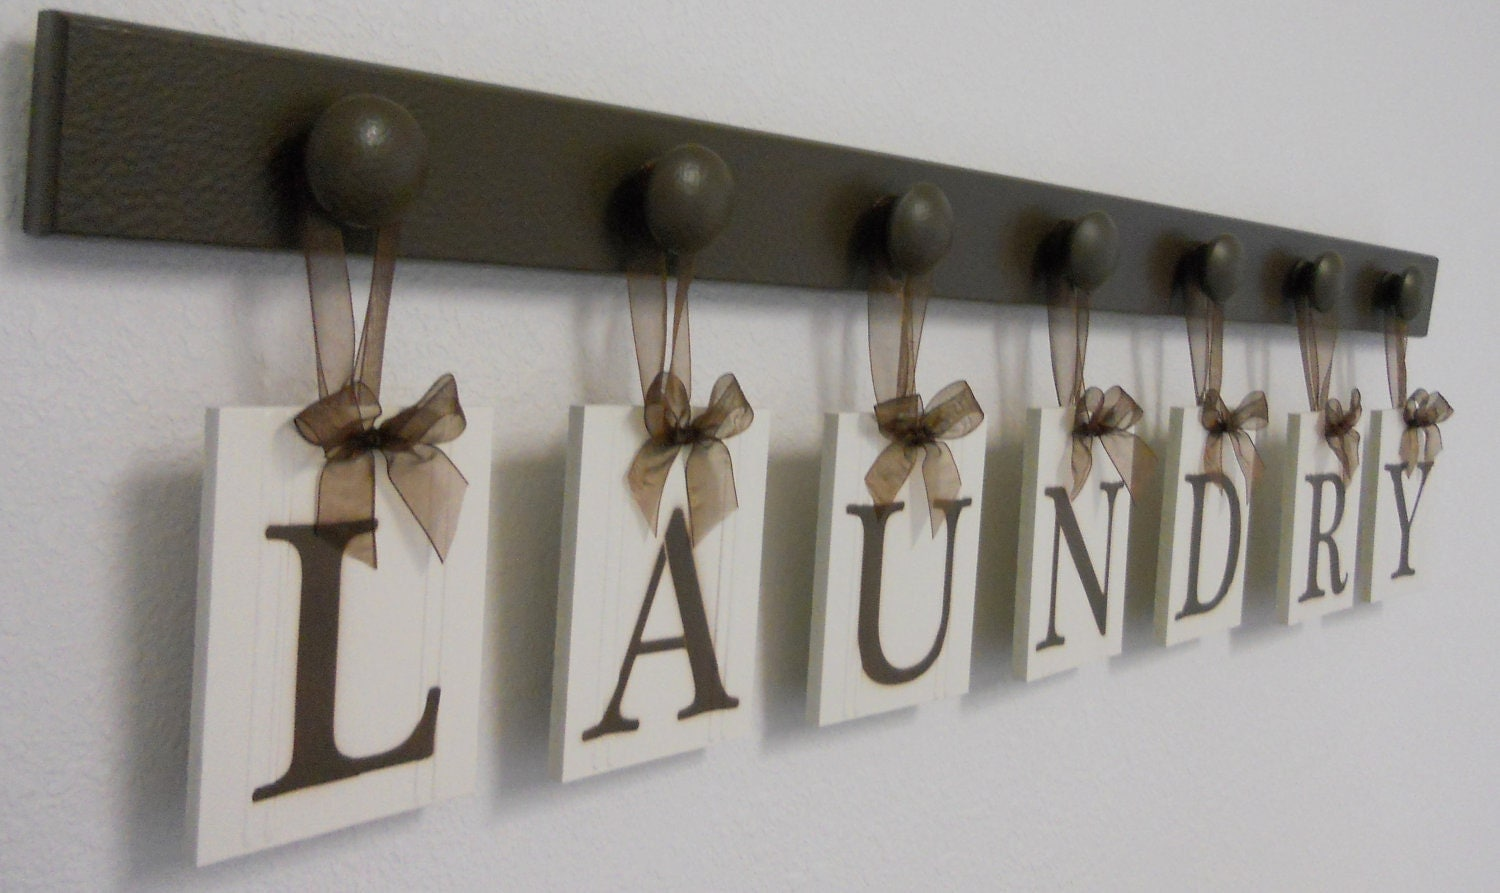 Laundry Wall Decor Laundry Room Decor Laundry Sign Laundry Room Sign